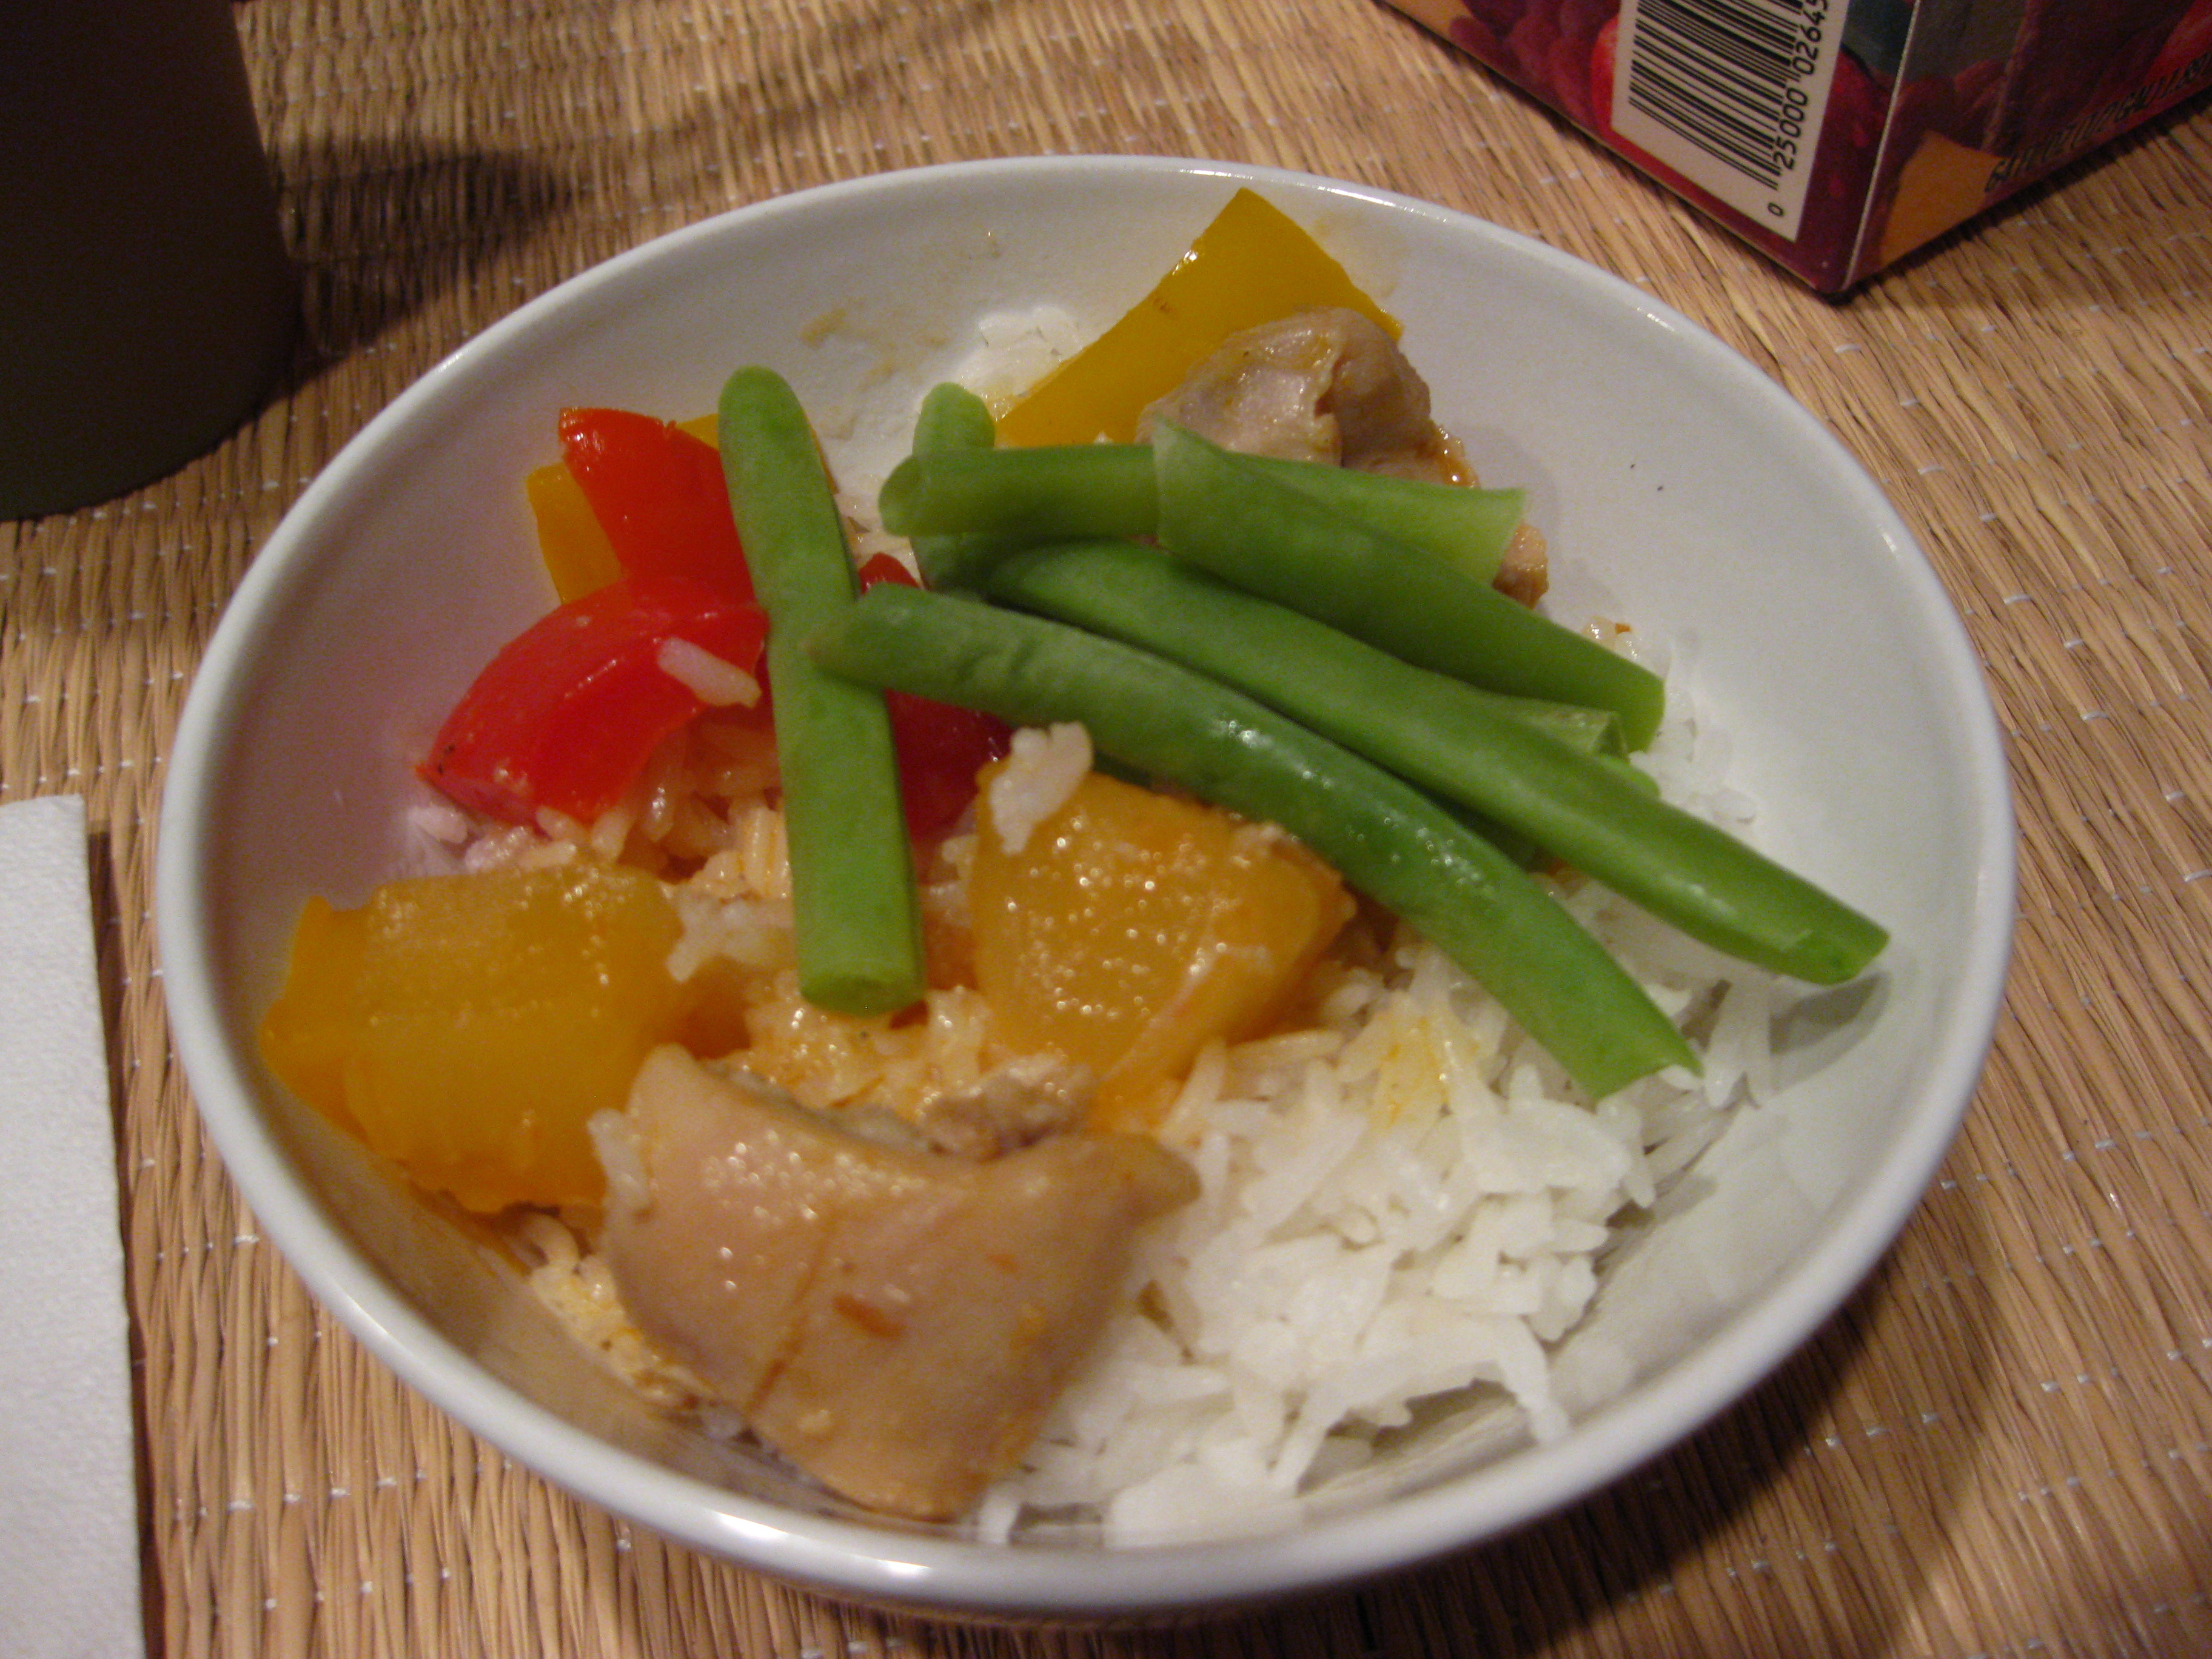 More sweet and sour chicken